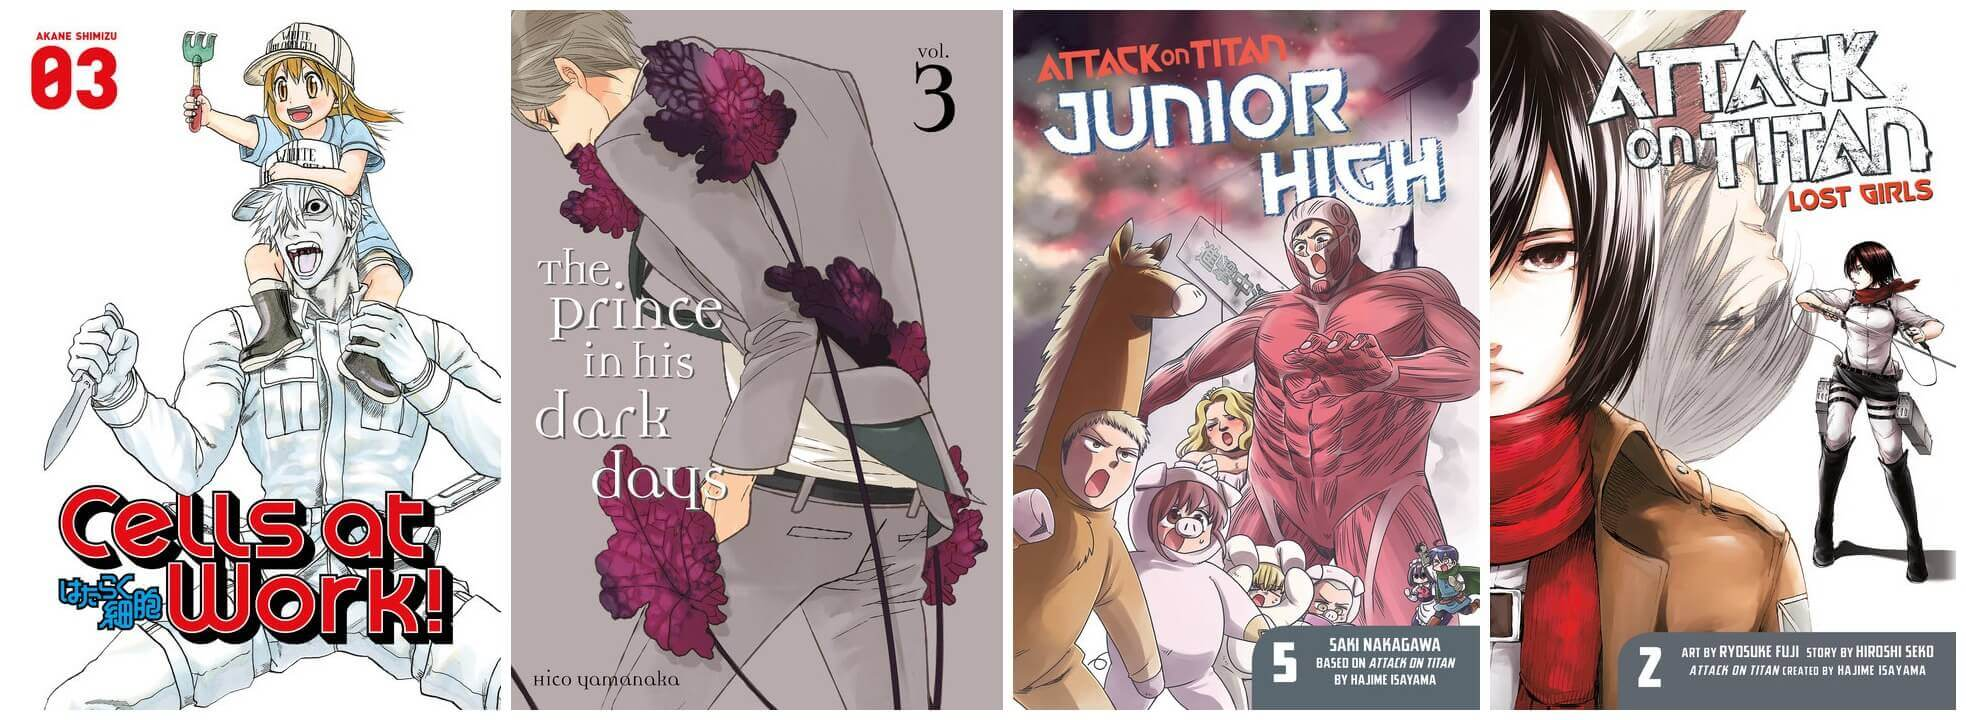 February 2017 Manga Releases Covers of Cells at Work, The Prince in His Dark Days, Attack on Titan Junior High, and Attack on Titan Lost Girls.